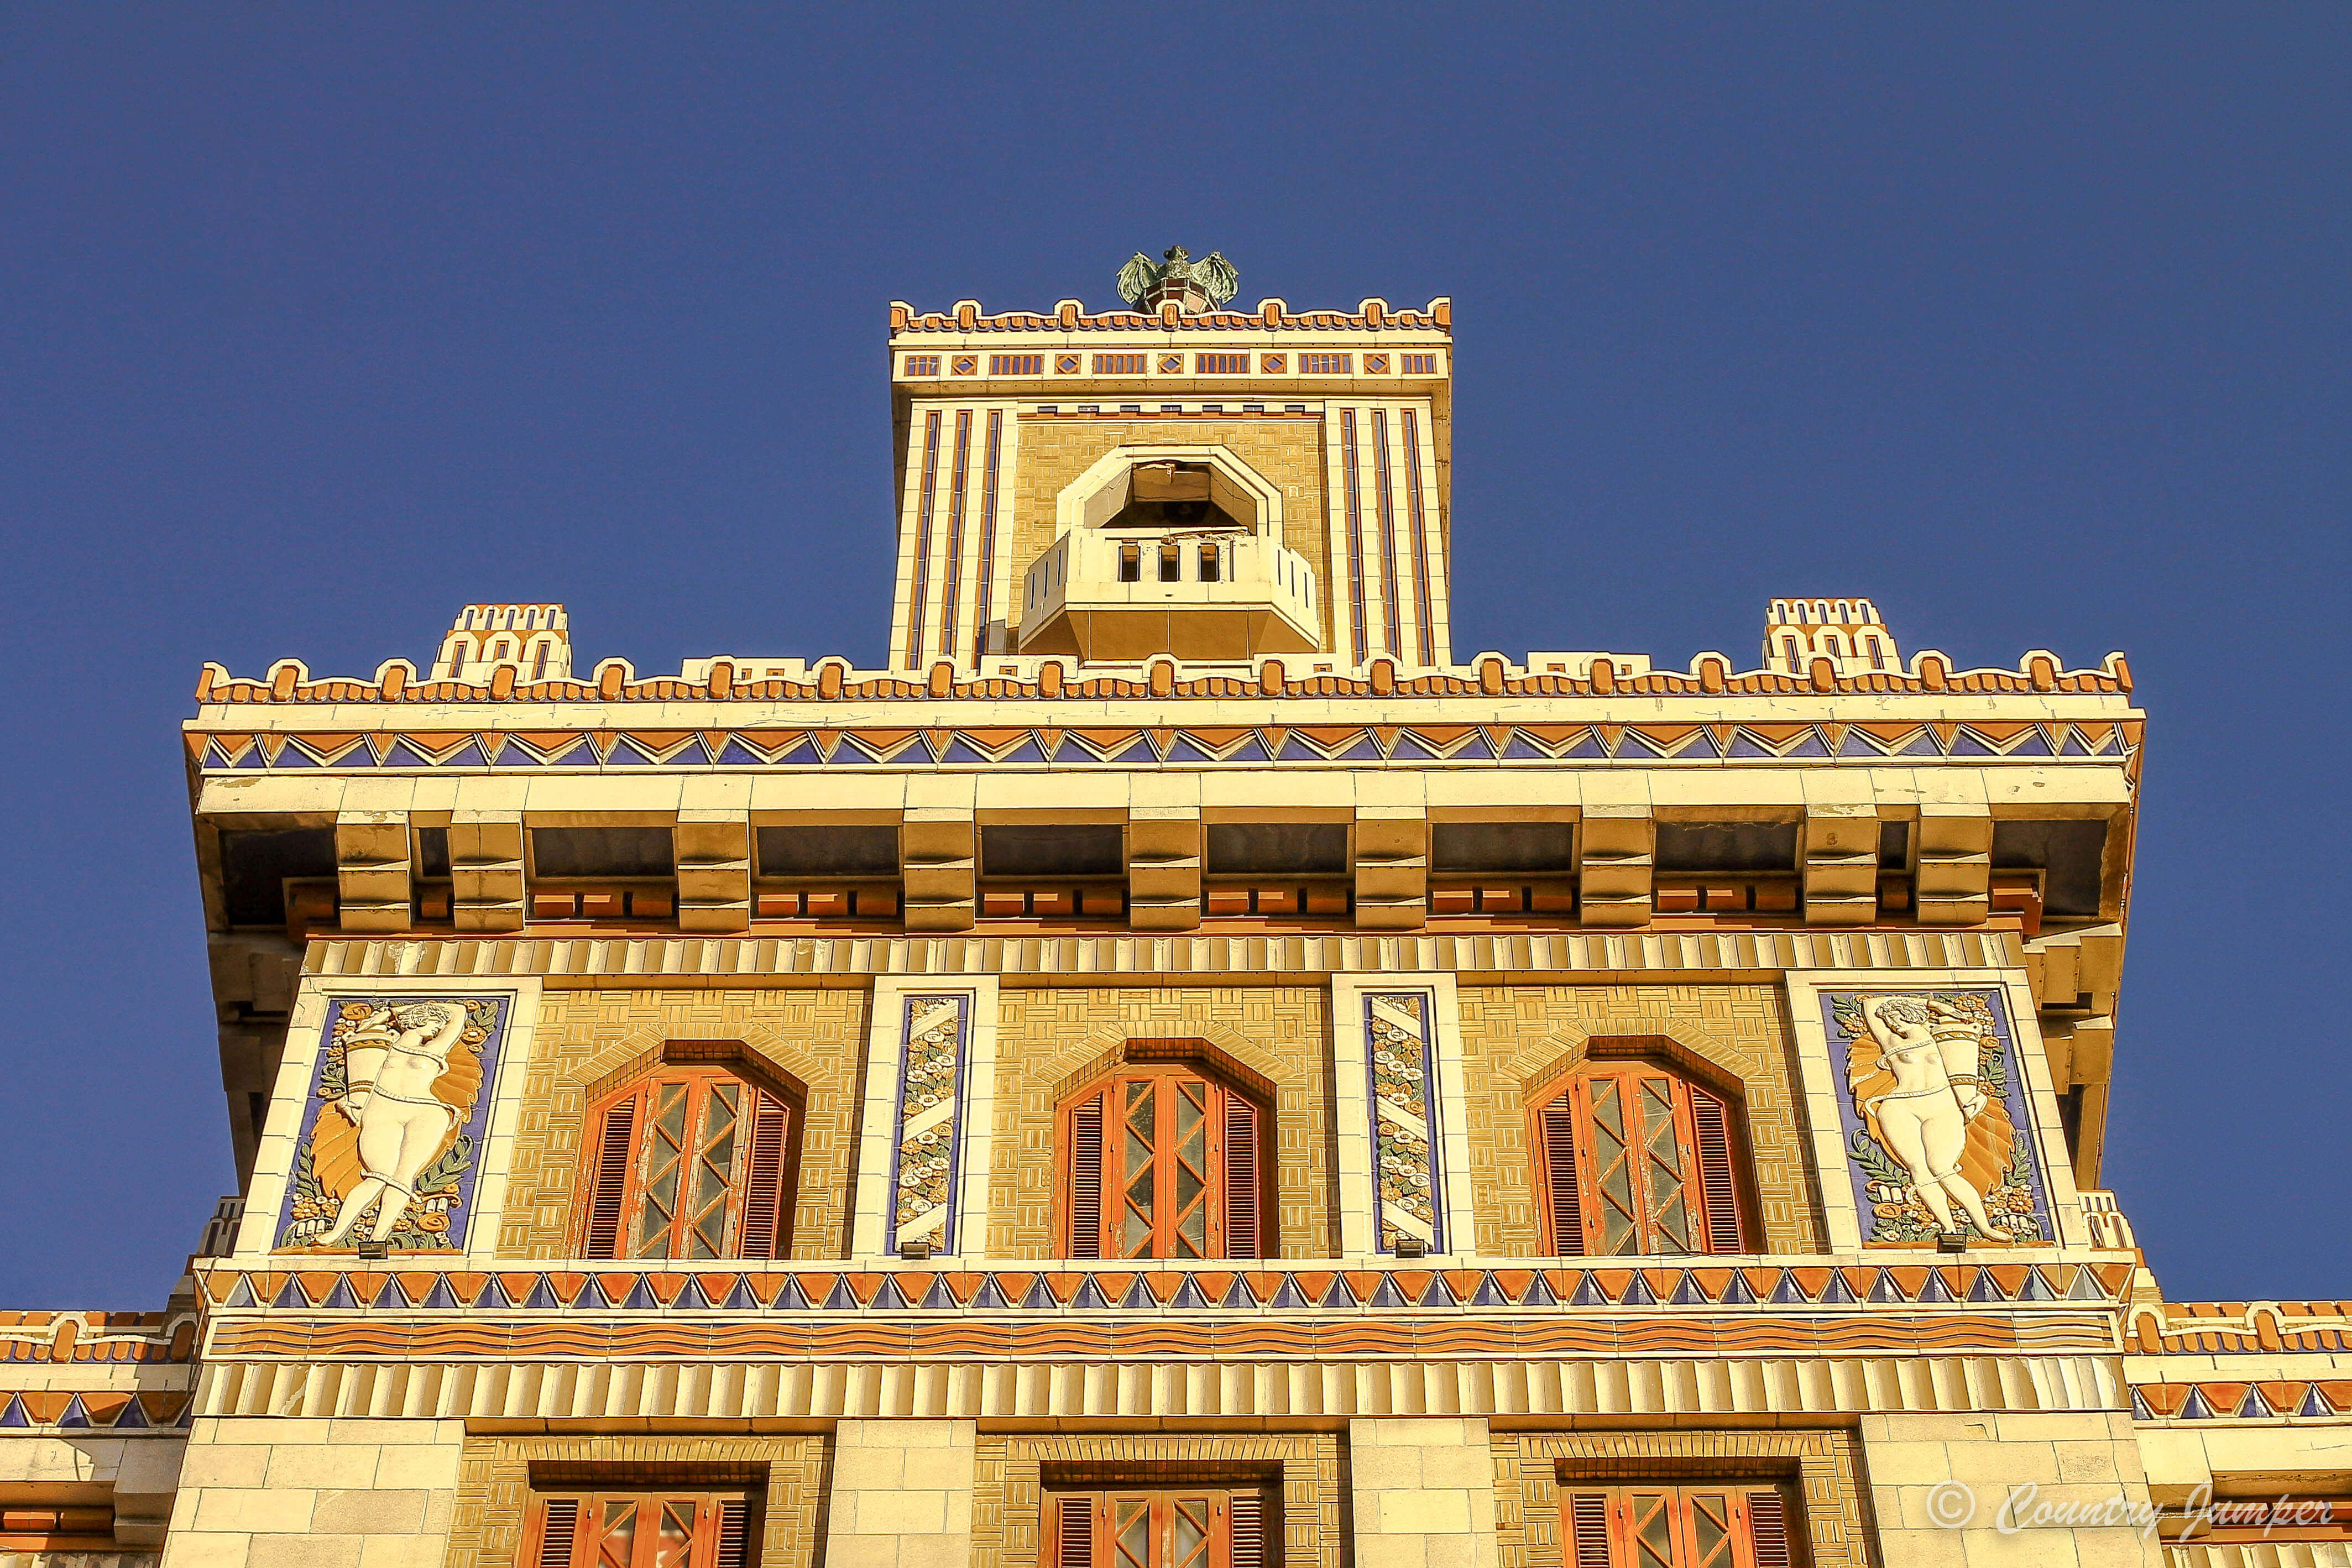 Large ornate building in Havana, The Bacardi Factory